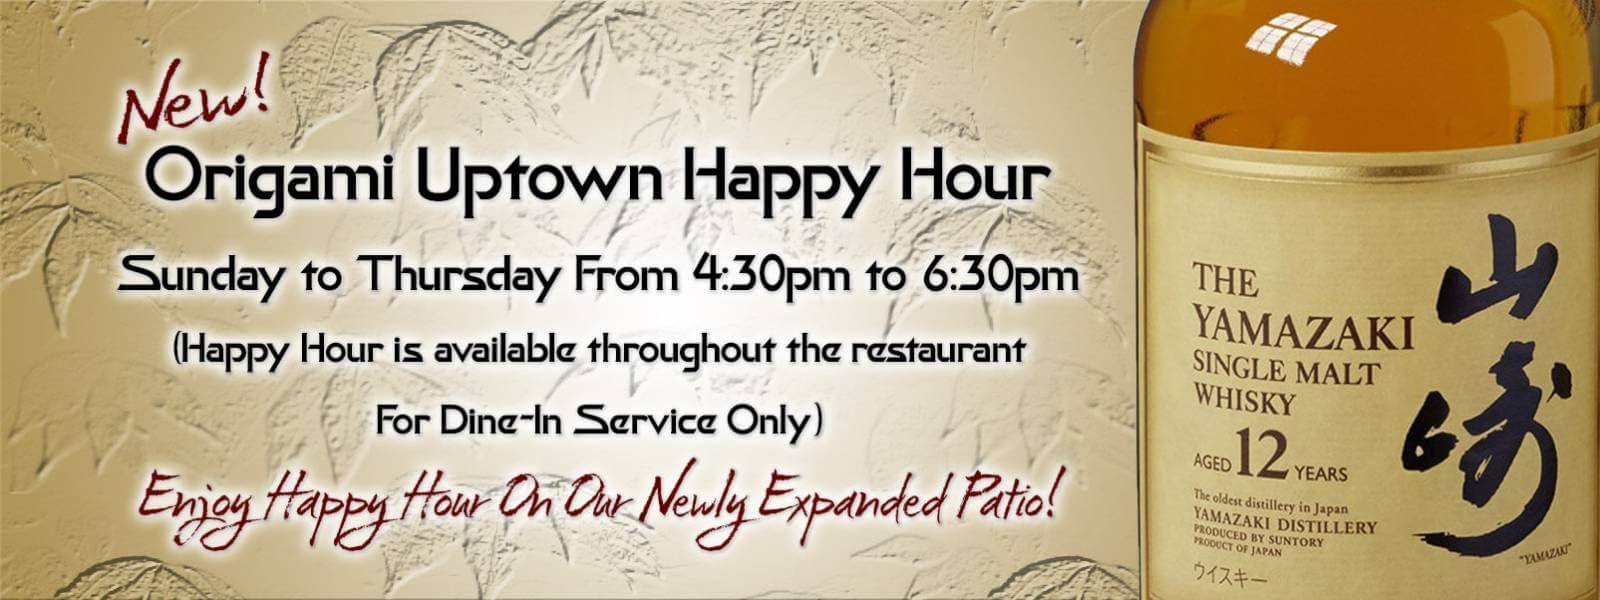 Happy Hour at Origami Uptown